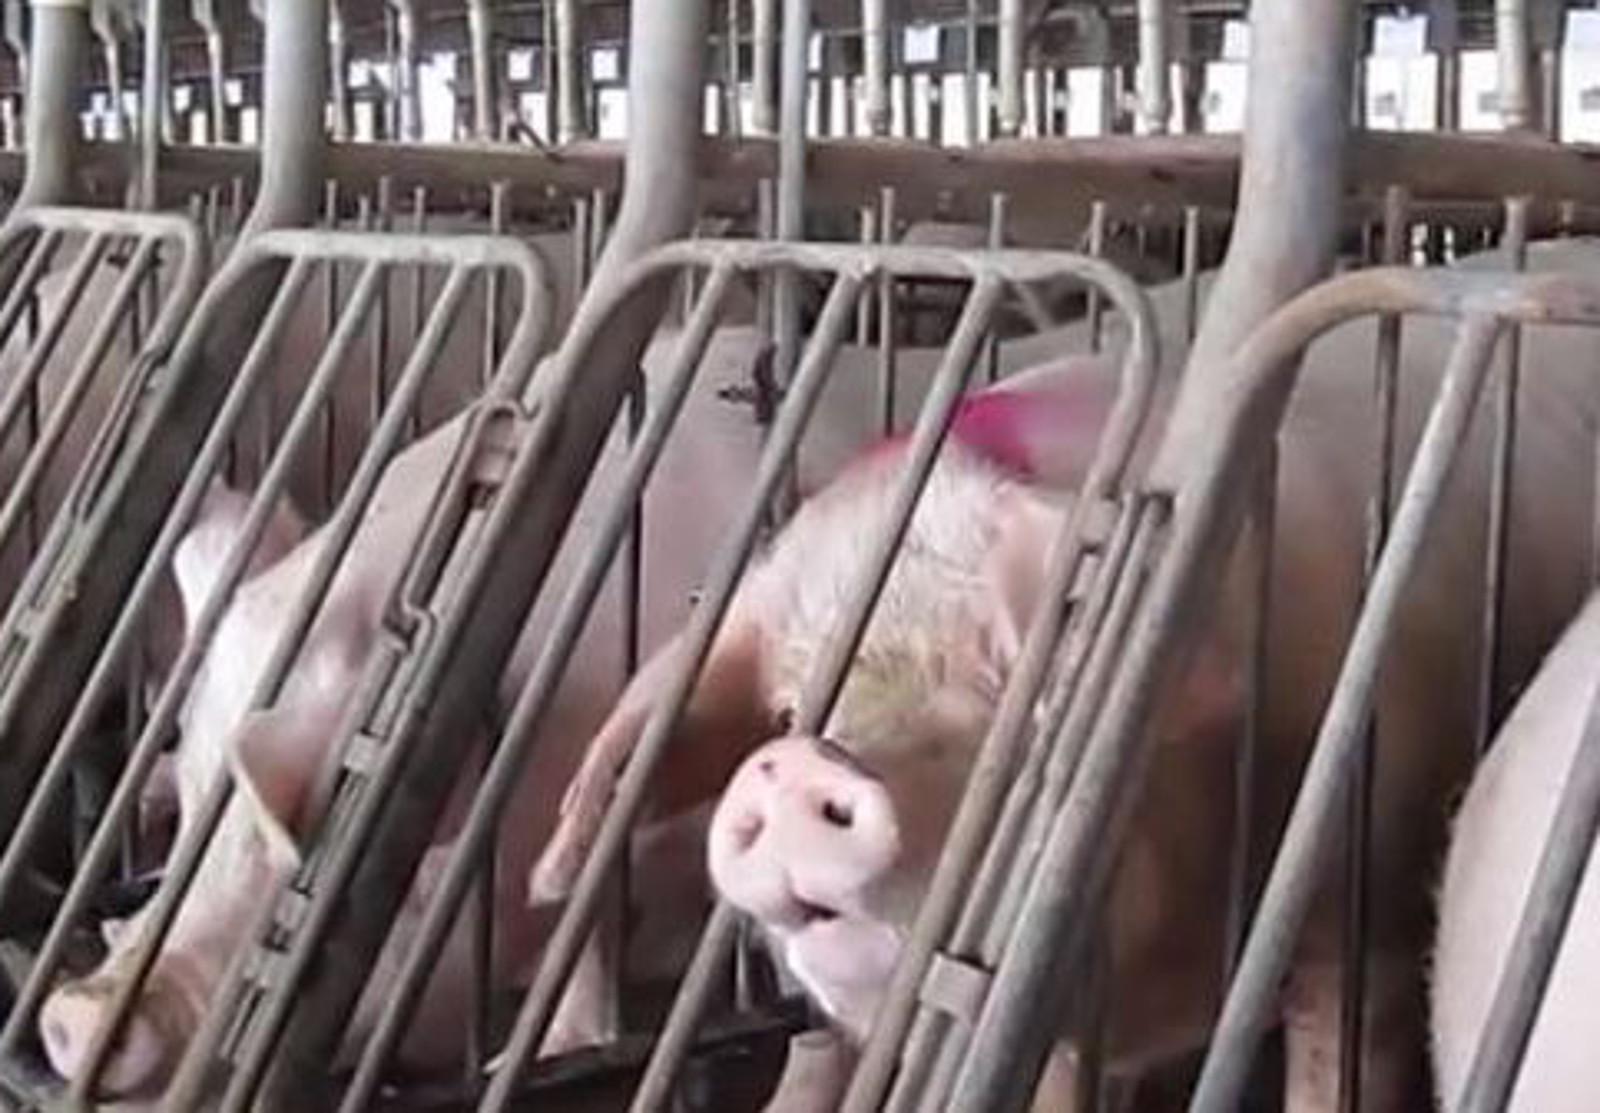 Cargill Moves to End Use of Gestation Crates!